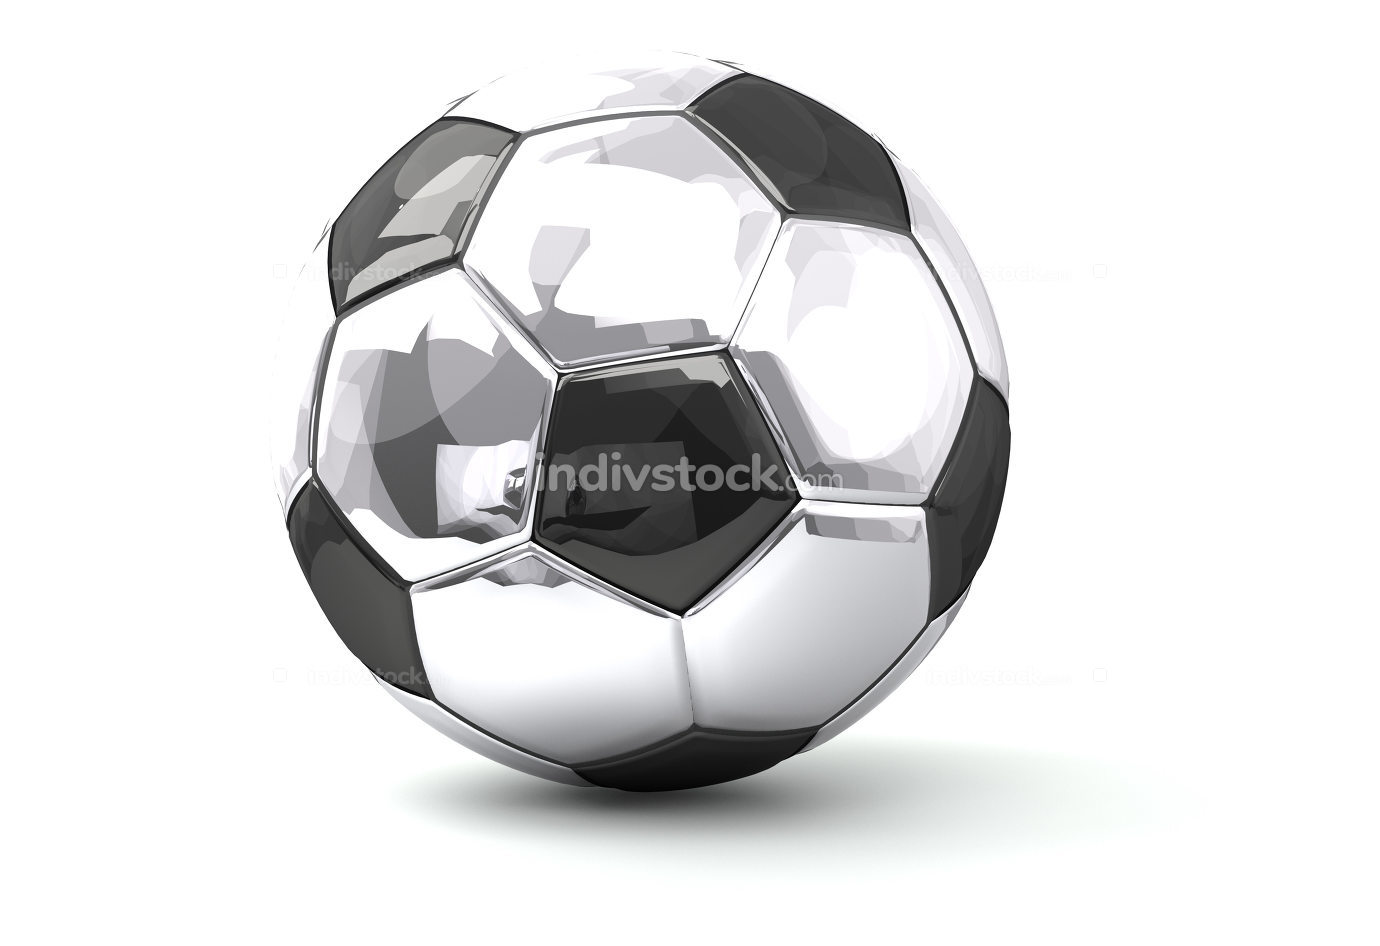 free download: silver soccer football ball 3d rendering isolated